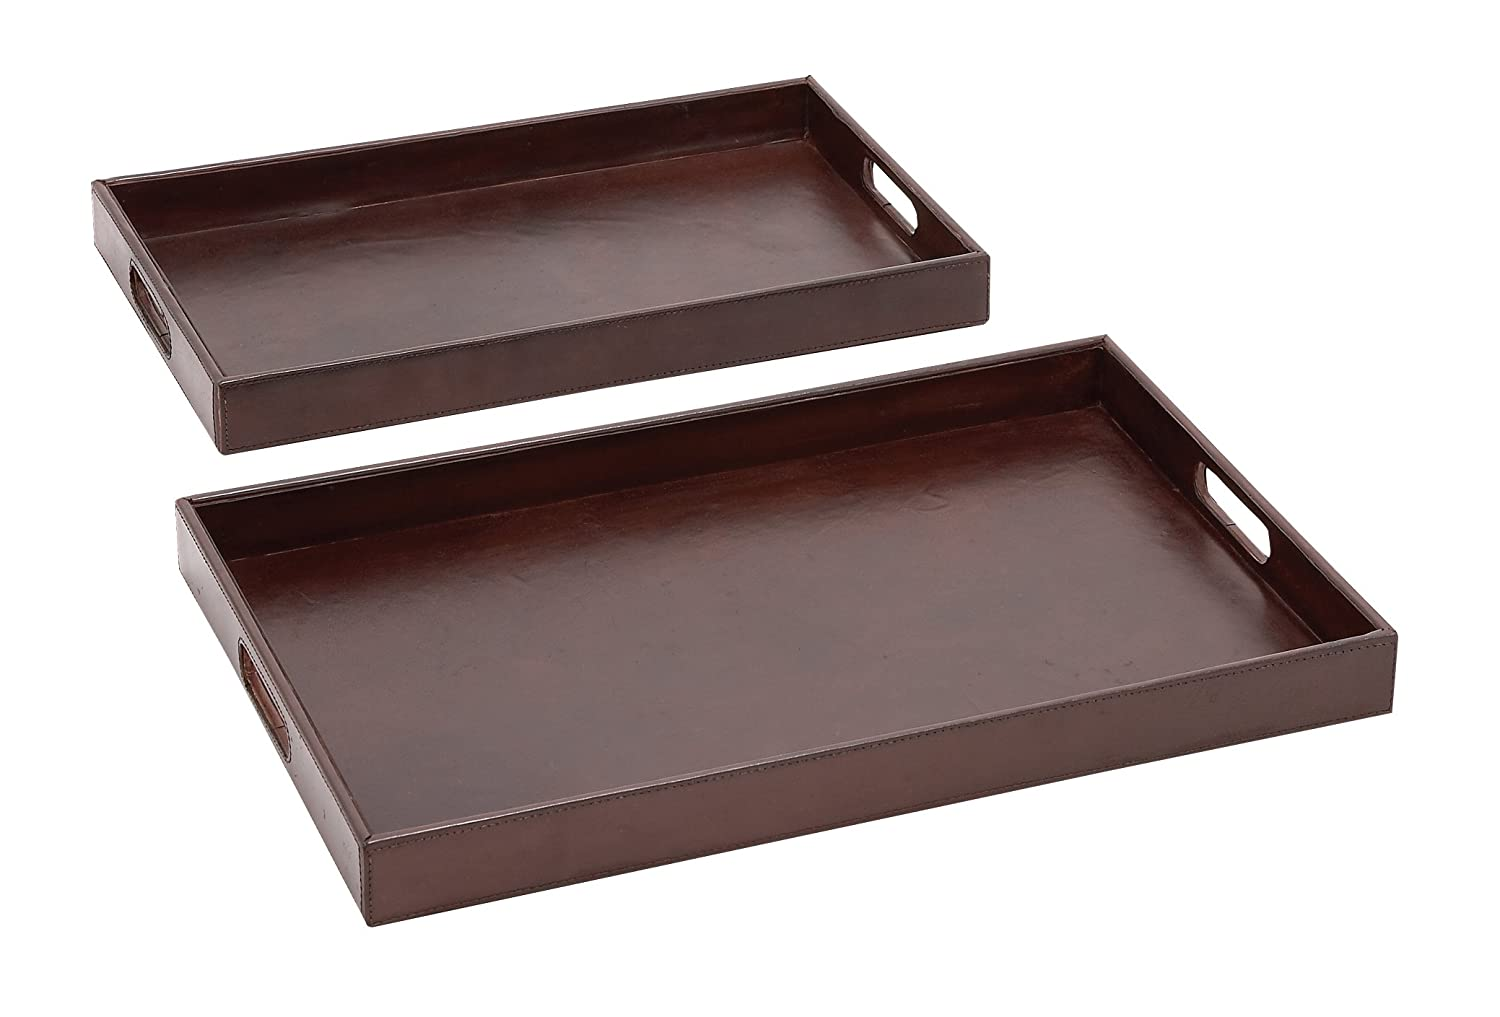 Amazon.com: Plutus Brands The Suave Set of 2 Wood Real Leather Tray: Home & Kitchen